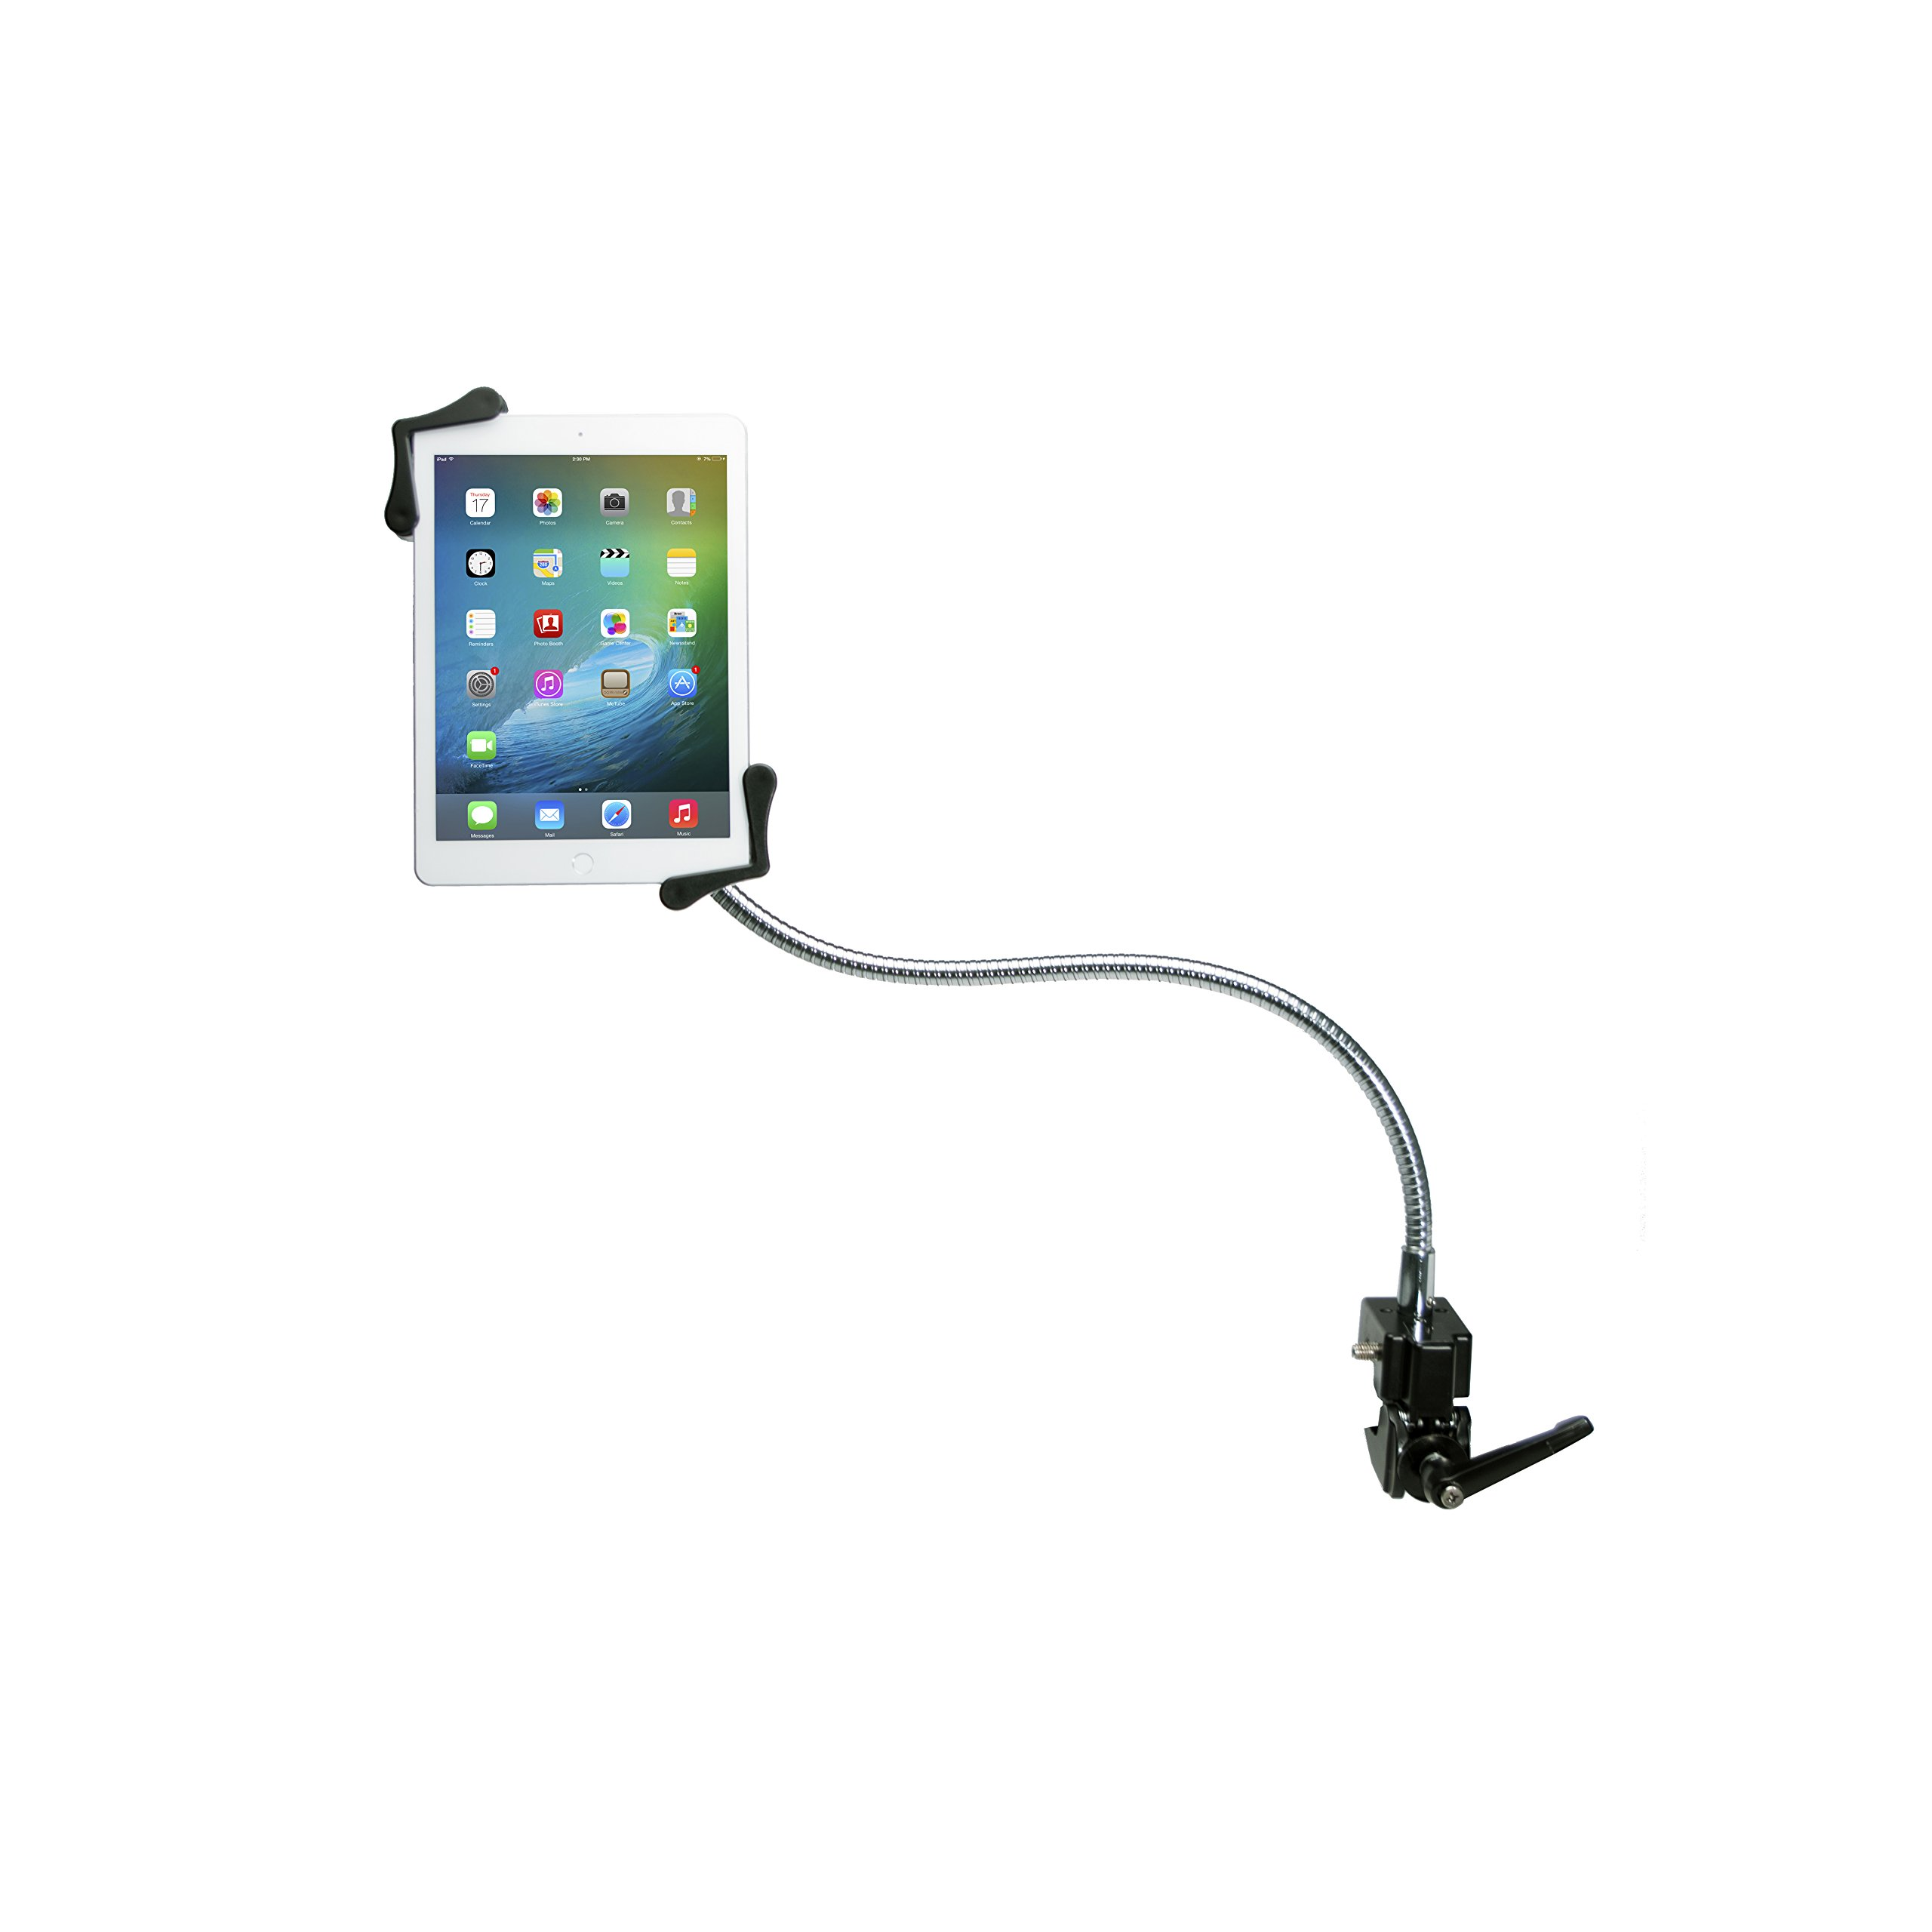 Tablet Mount, CTA Digital Heavy-Duty Gooseneck Clamp Stand For 7-13'' Tablets, fits iPad 10.2-inch (7th Gen.), iPad Air 3, iPad mini 5, 12.9-inch iPad Pro, iPad Gen 6 & More by CTA Digital